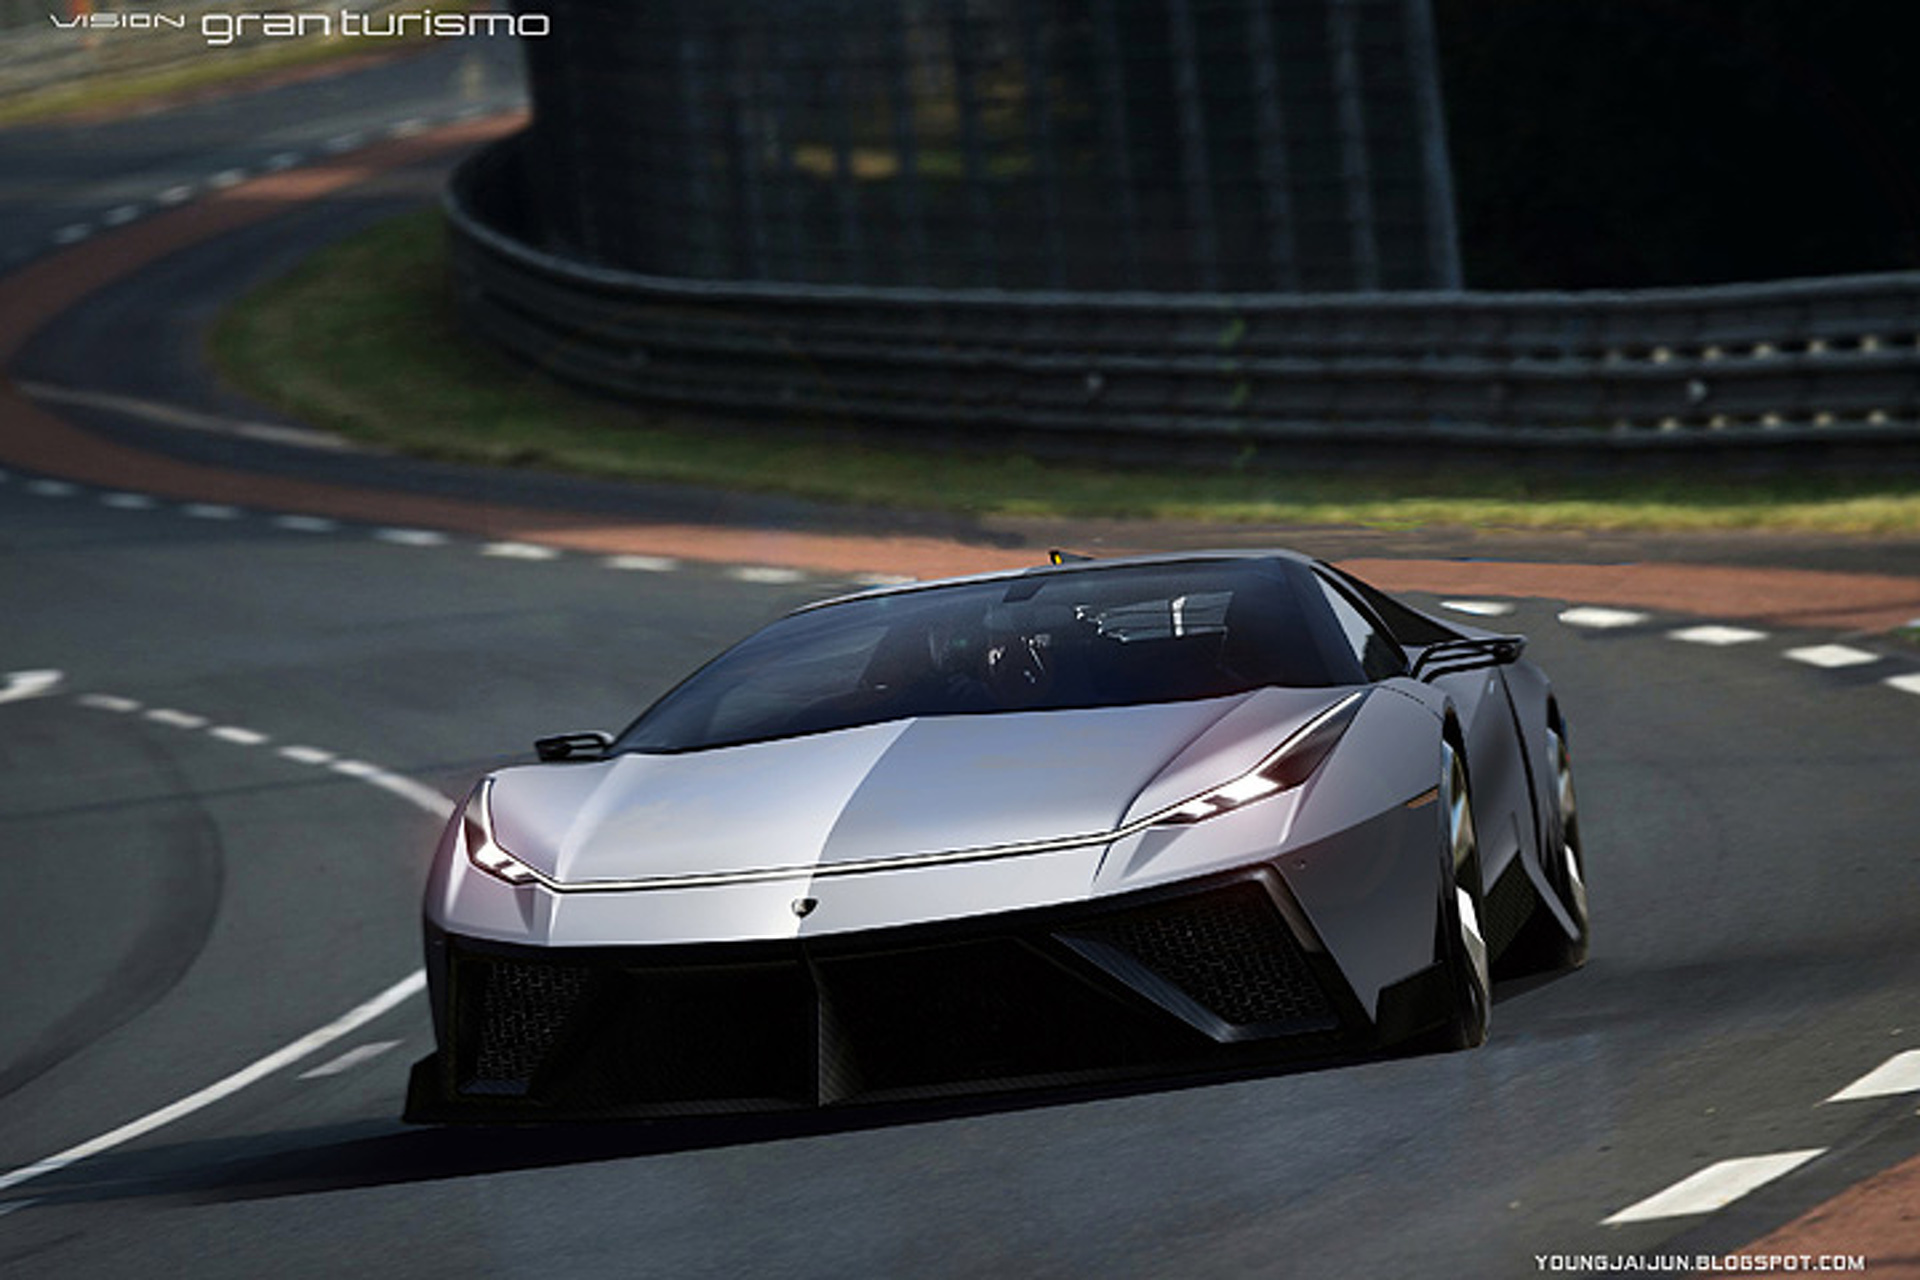 Lamborghini 'Missile' Concept is a 220MPH Blast to the Future